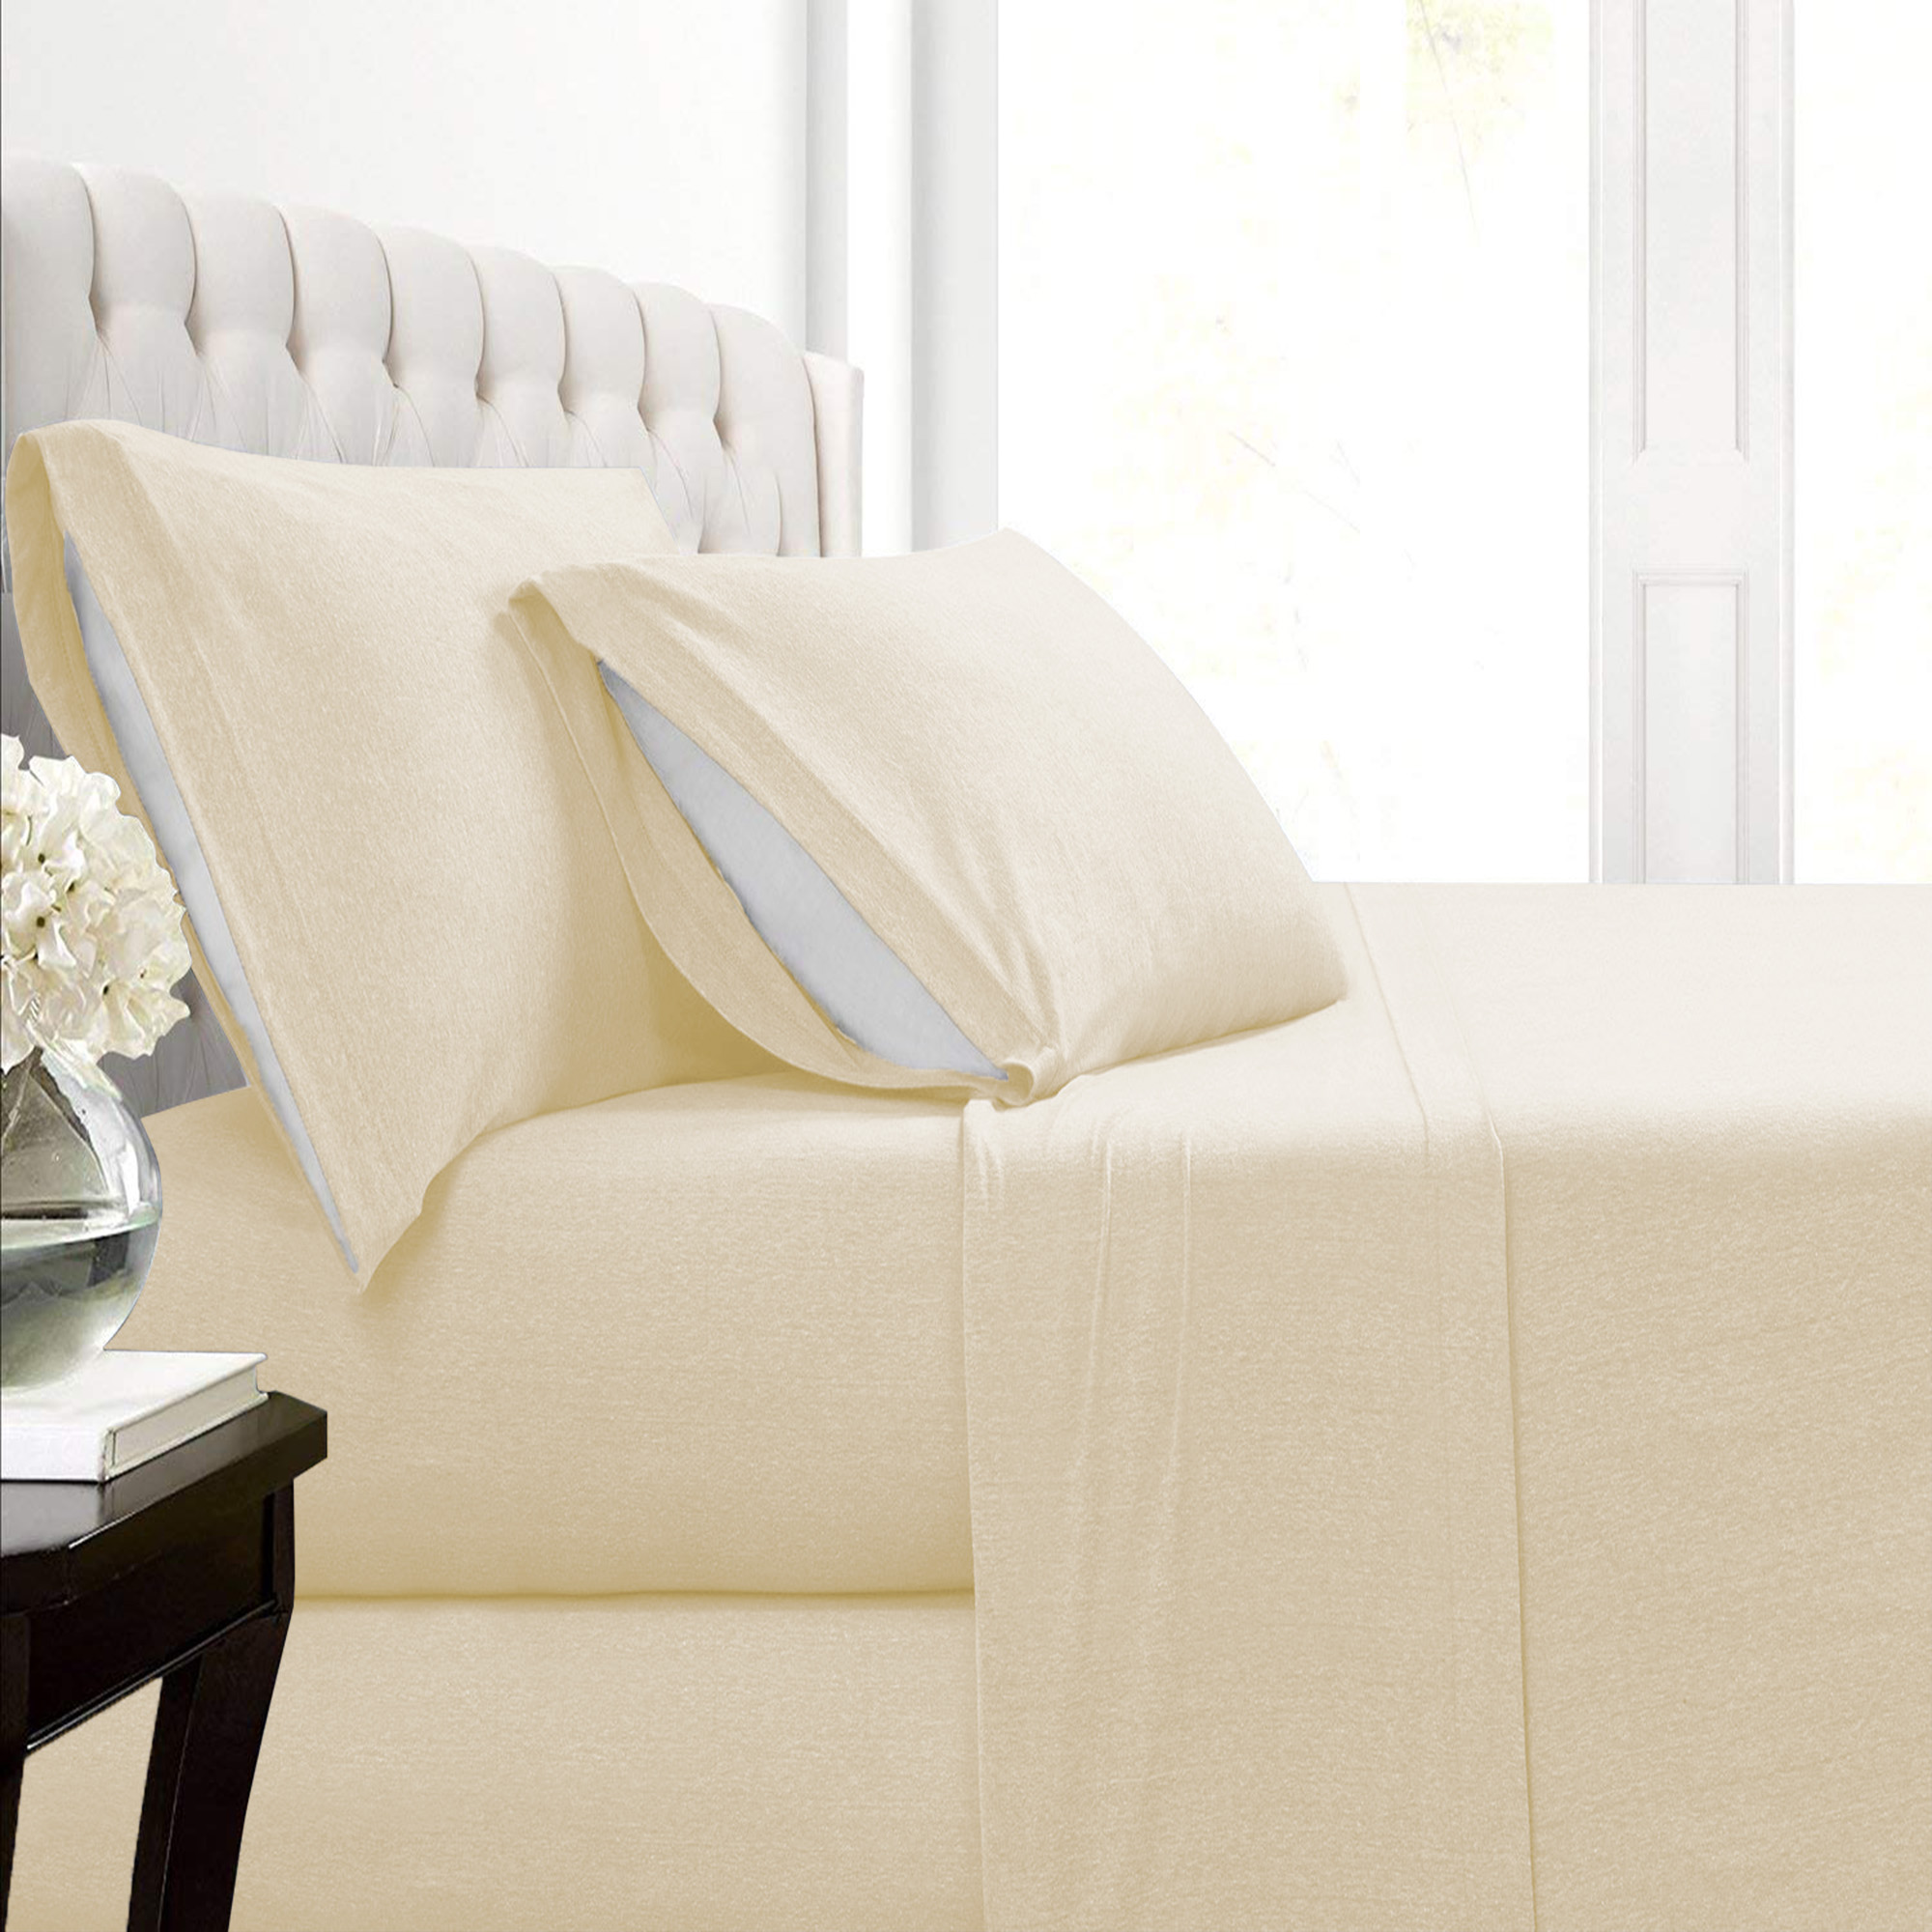 Malina Cotton Jersey Bed Sheet Set